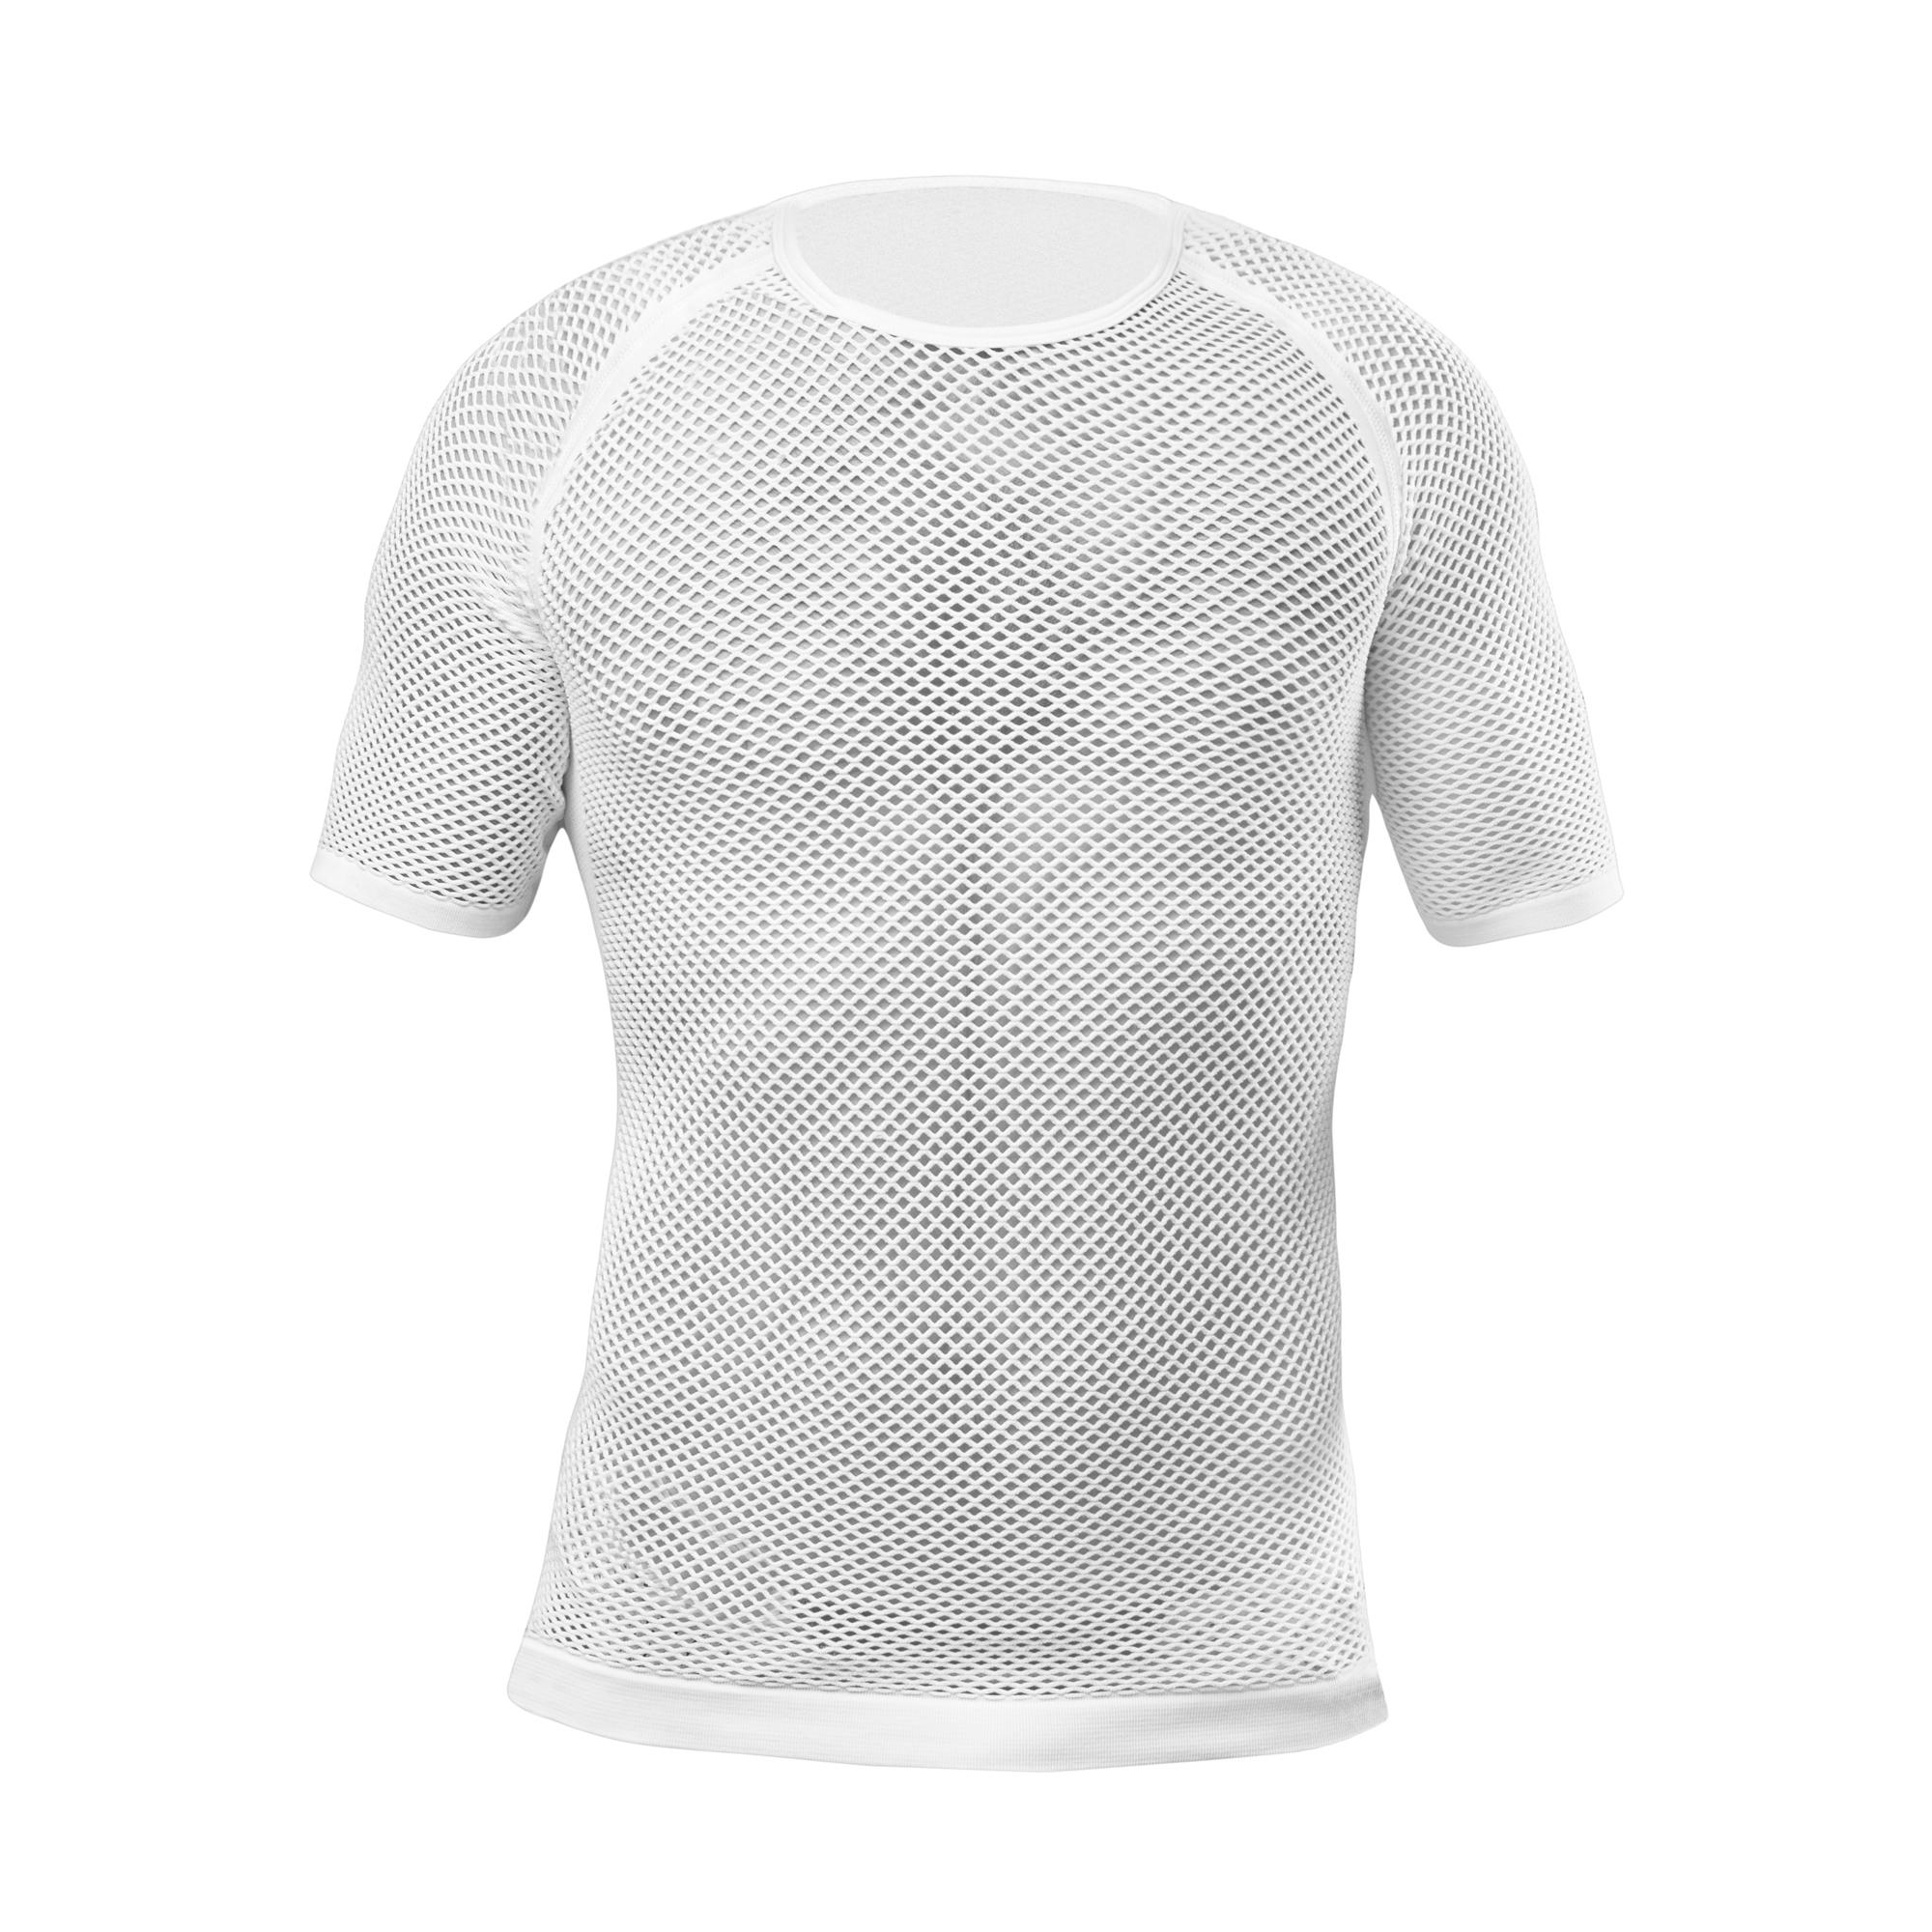 Afbeelding GripGrab Ondershirt korte mouwen Unisex Wit / 3-Season Short Sleeve Base Layer